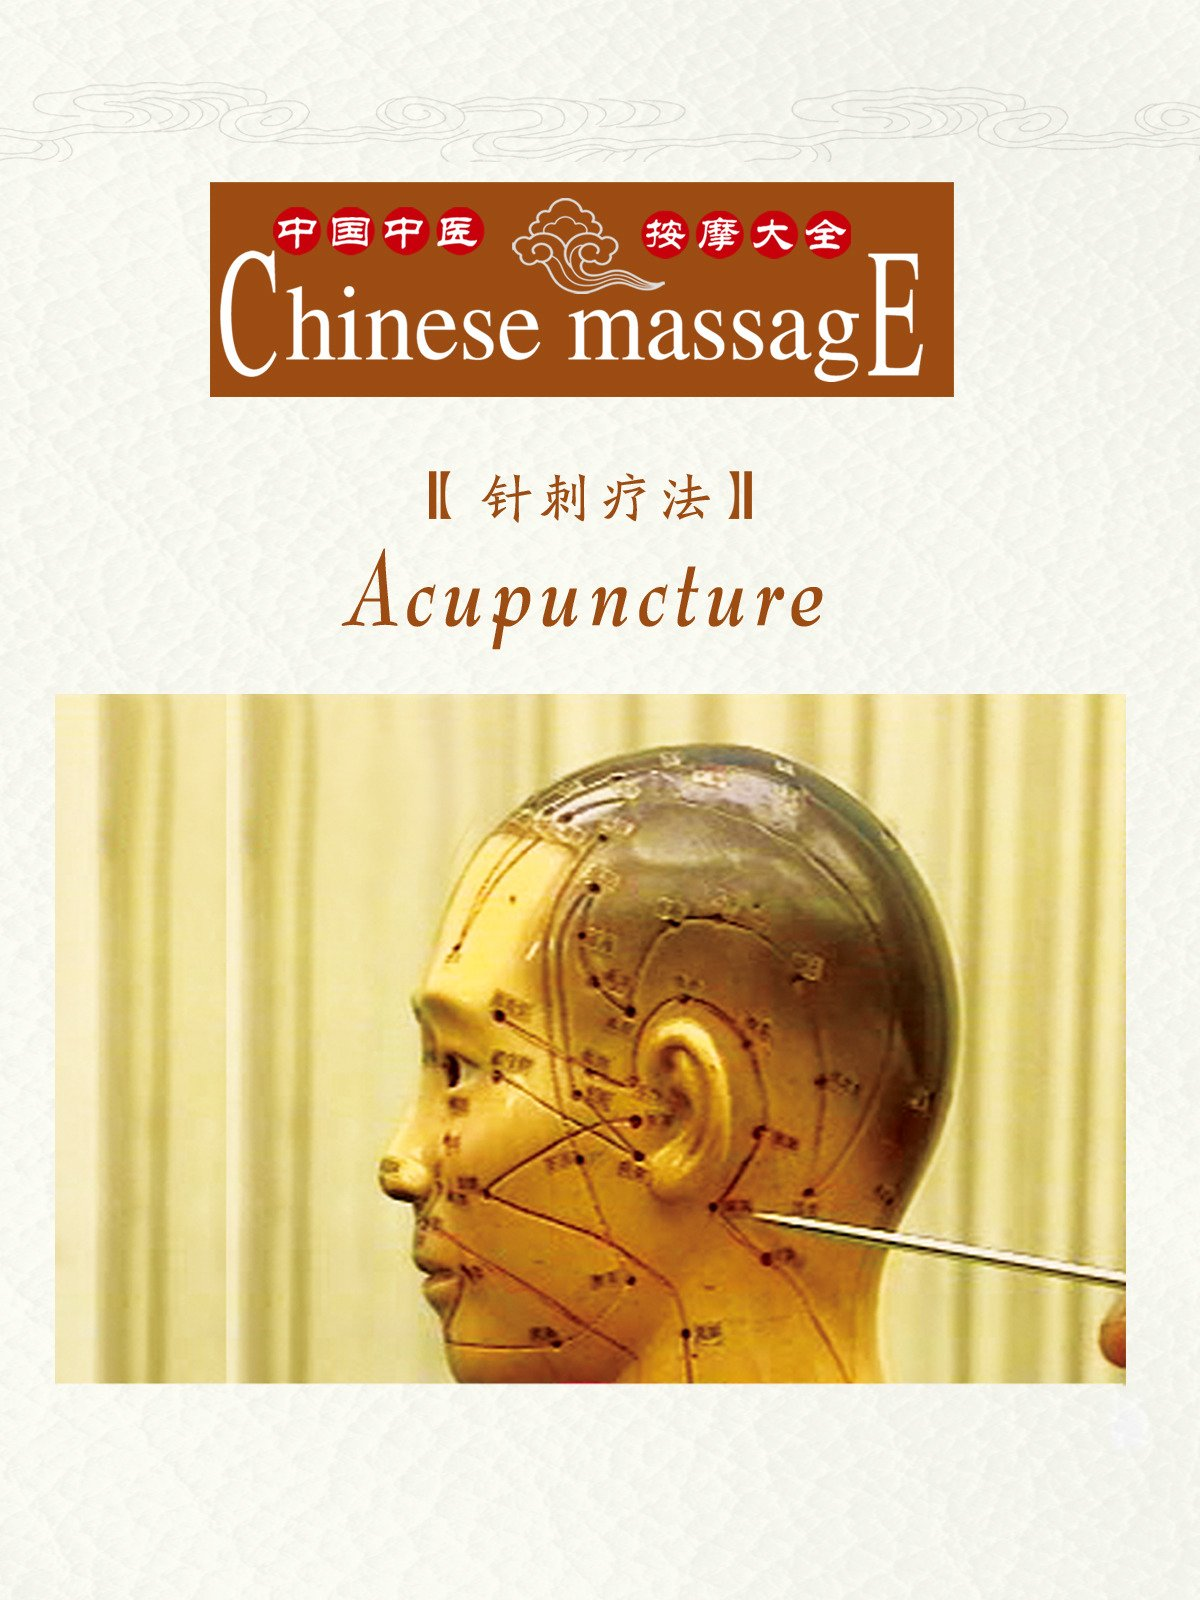 Chinese Massage-Acupuncture